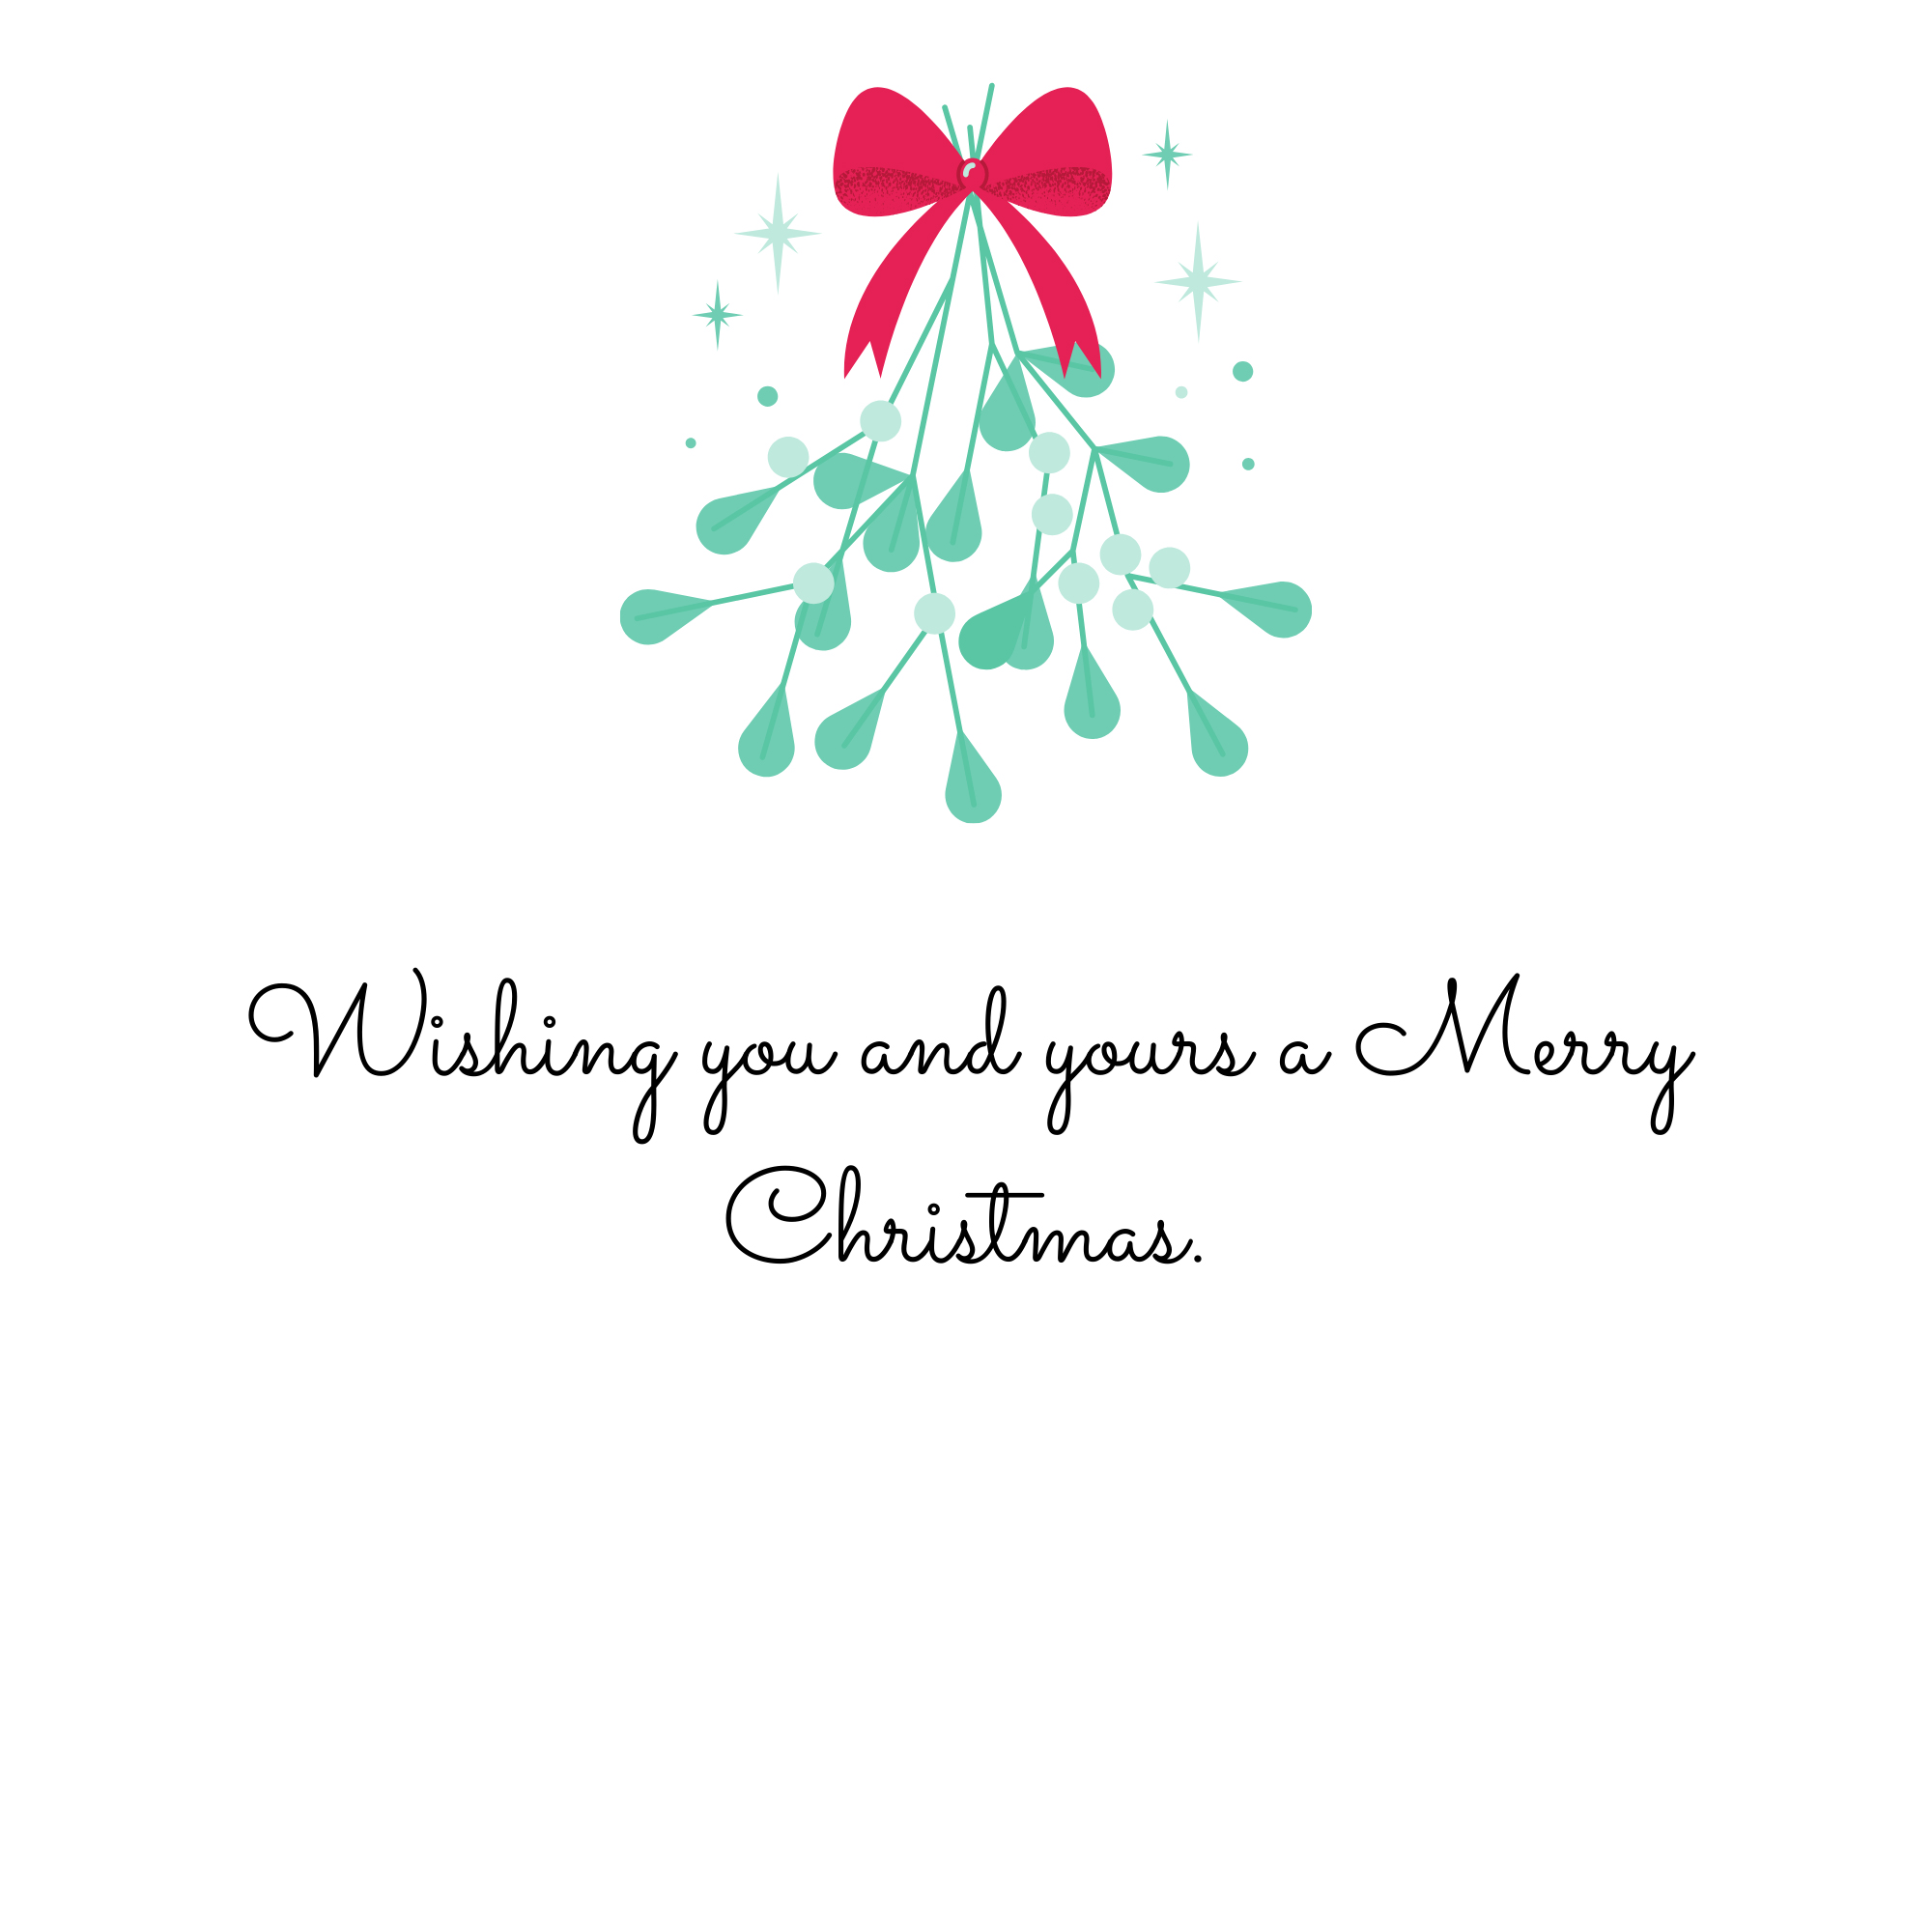 Wishing you and yours a Merry Christmas